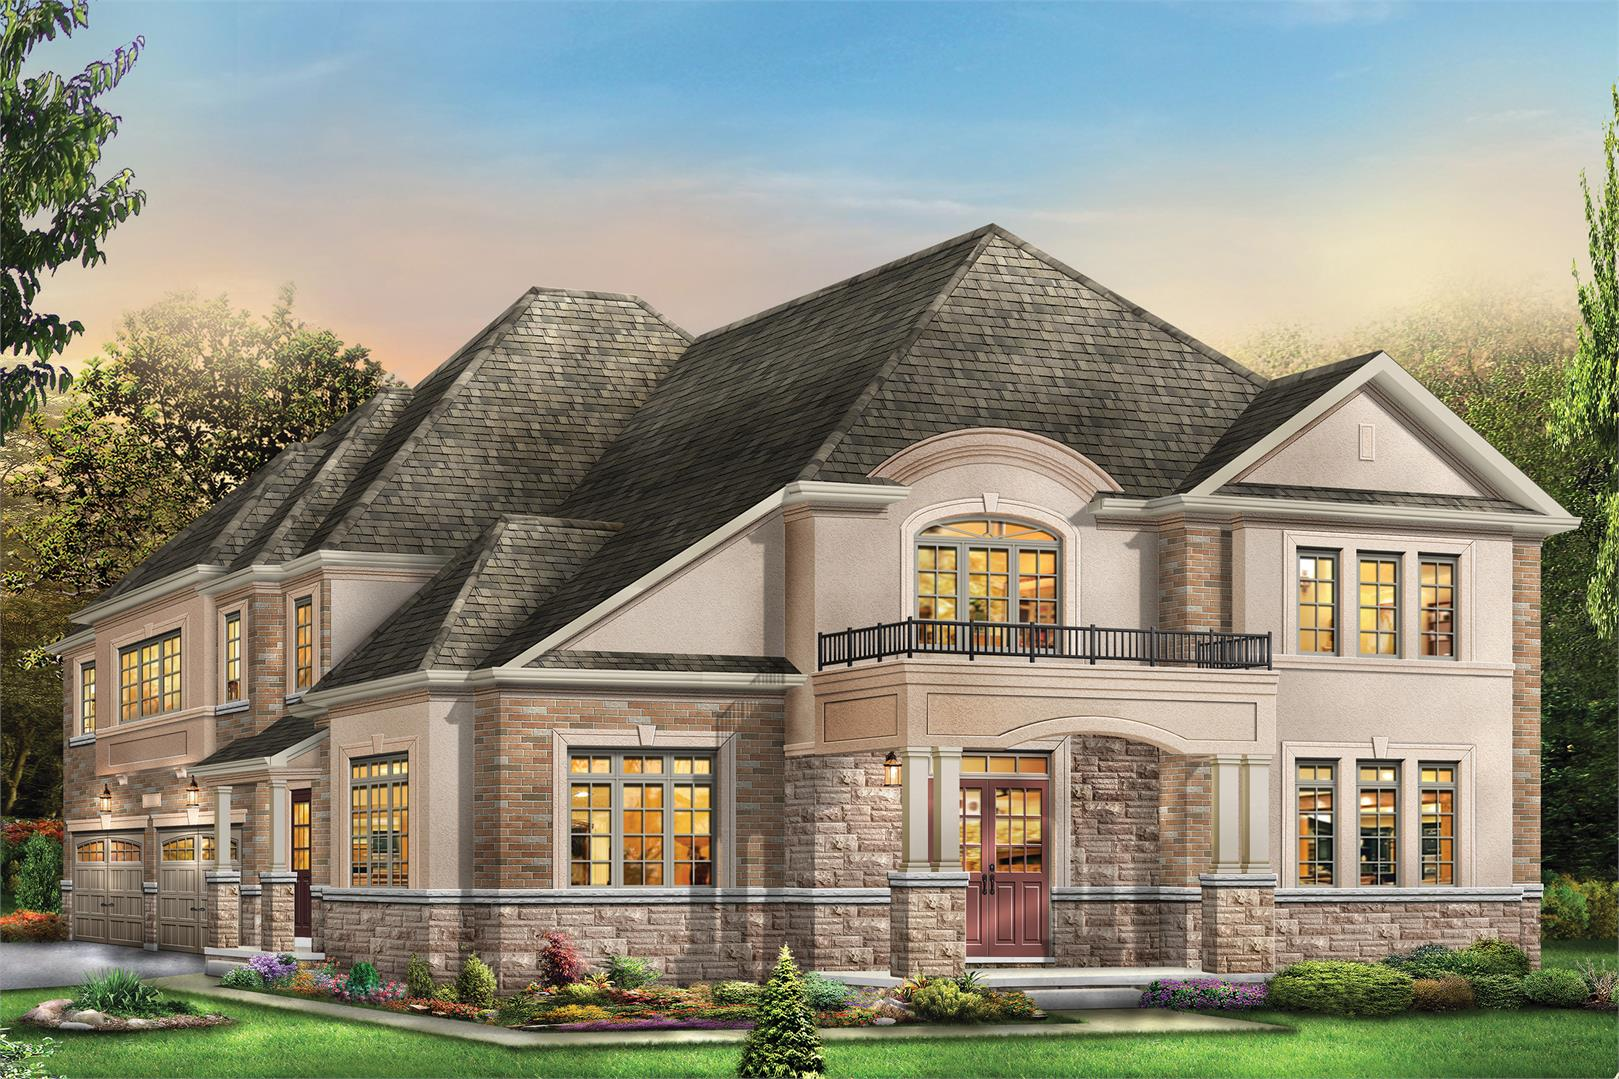 The Classics Phase 4 Exterior, Brampton